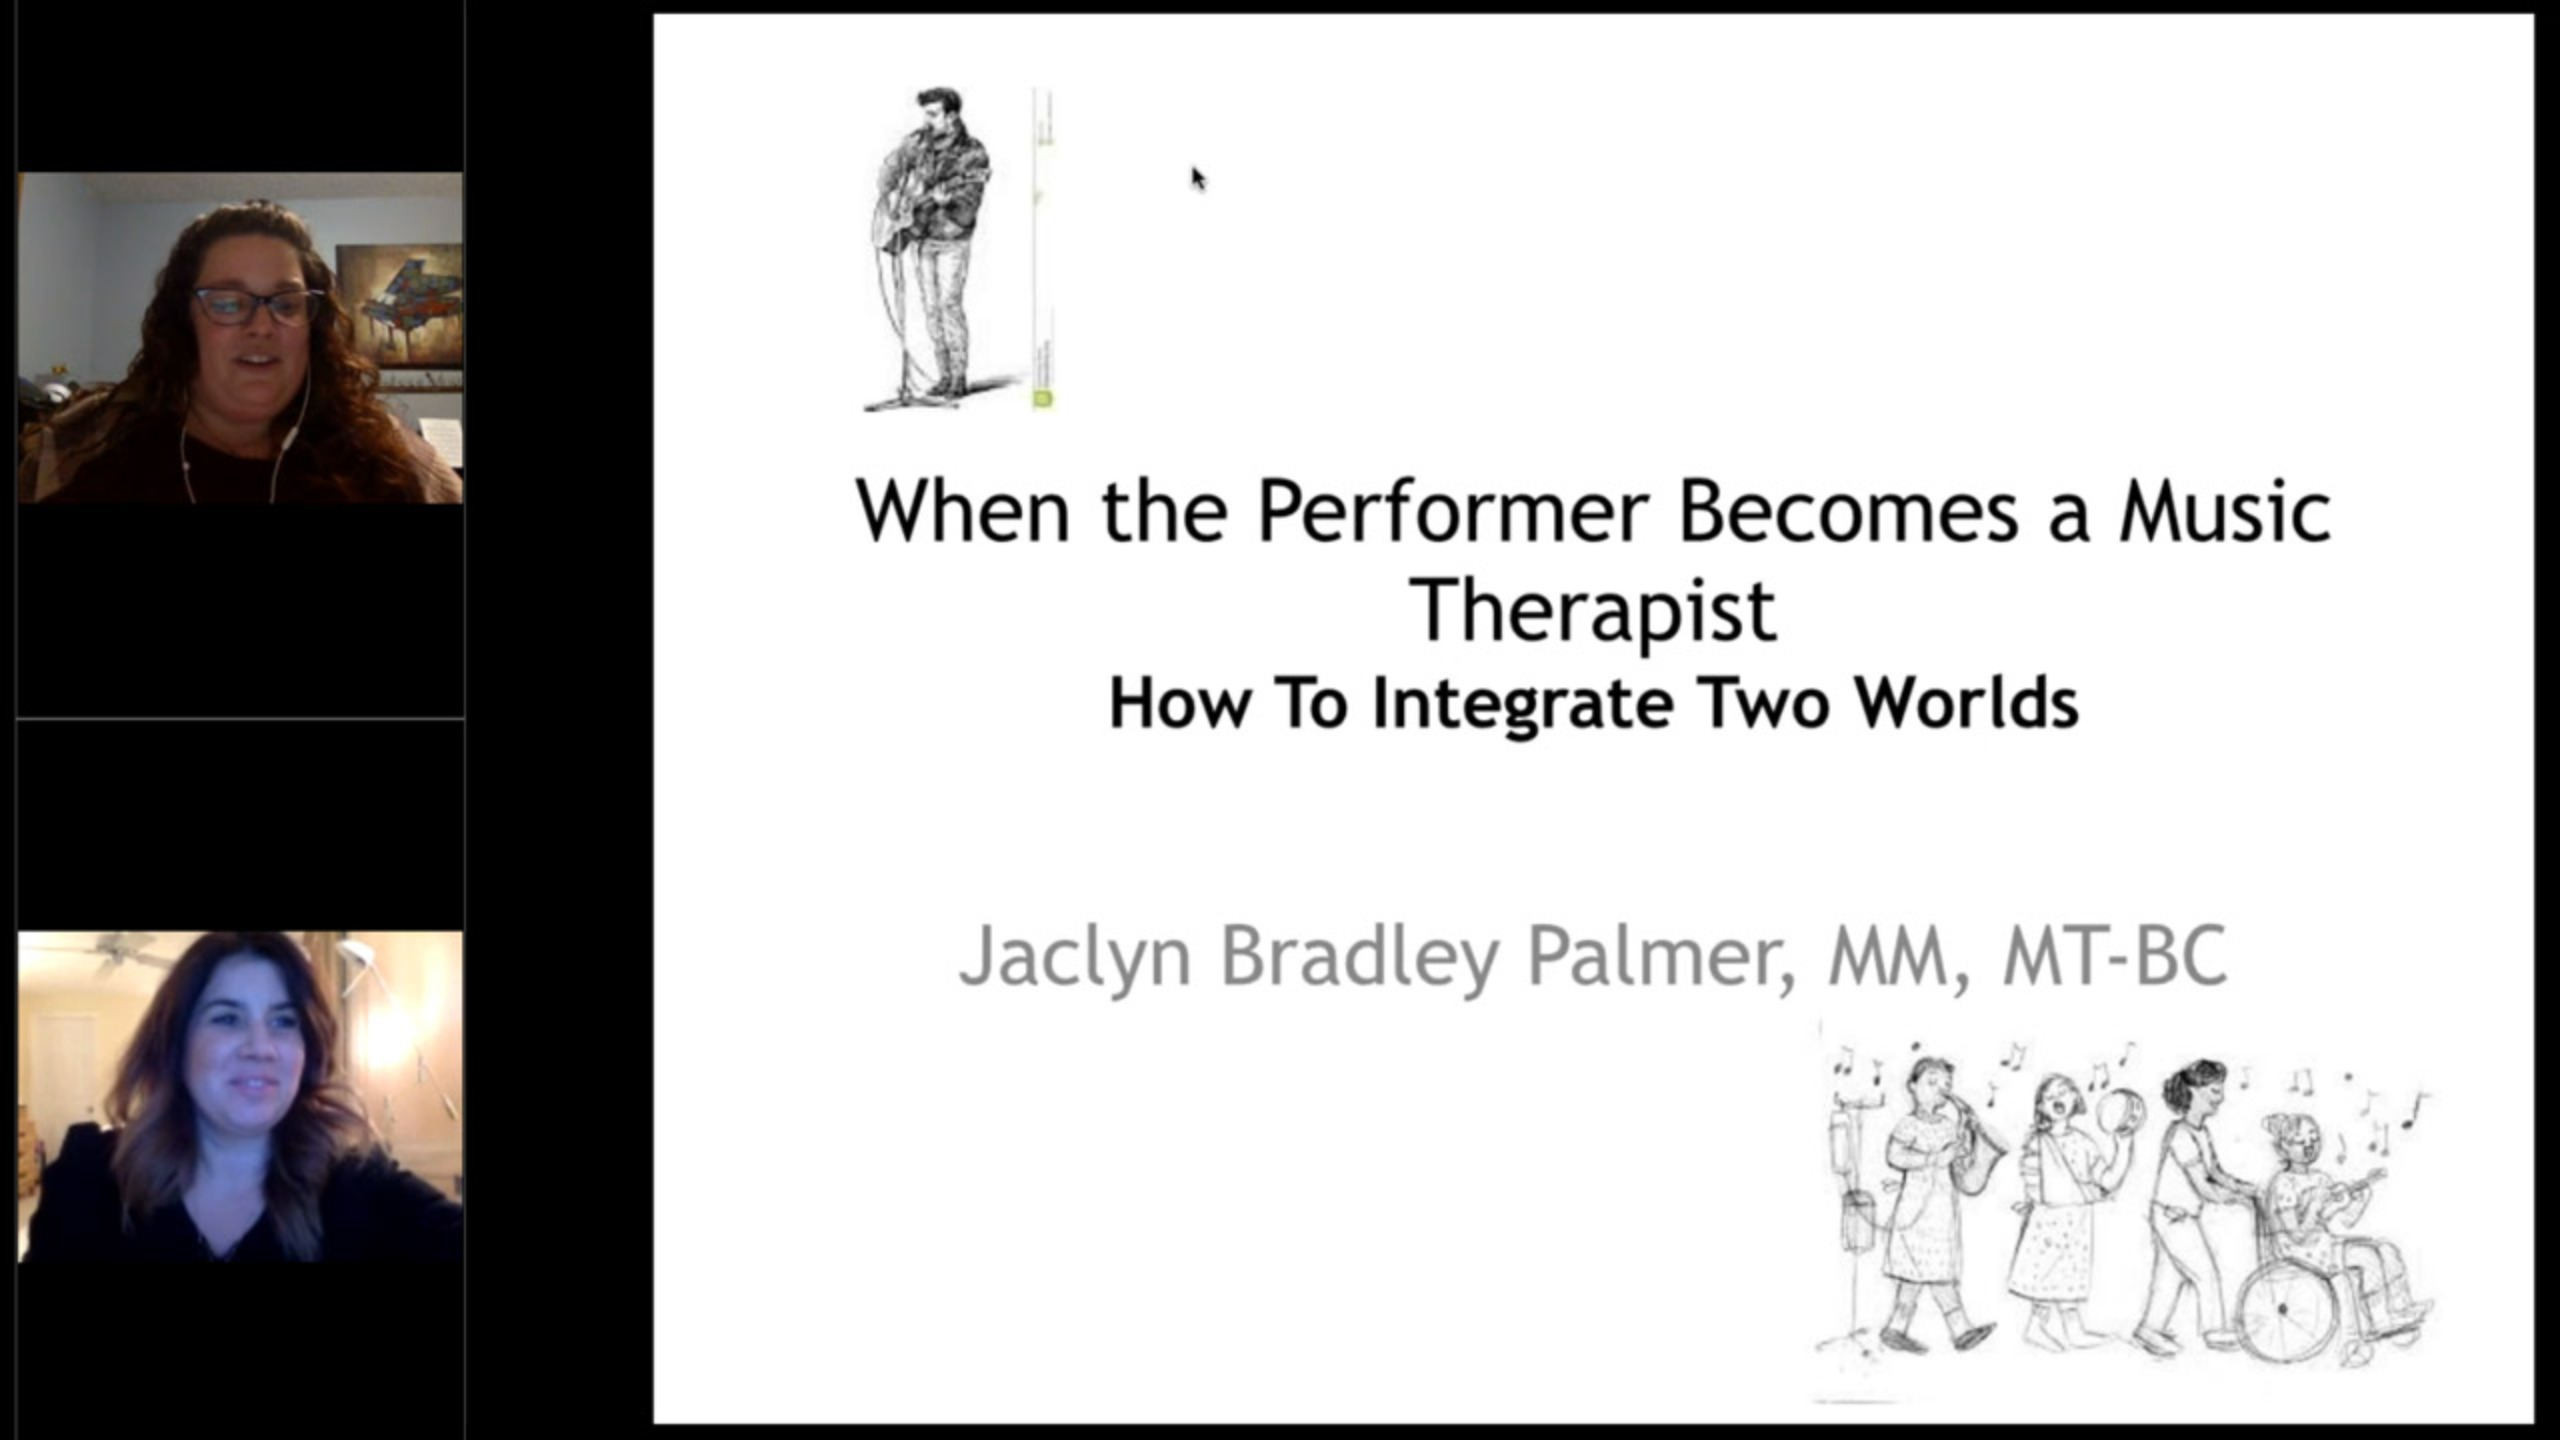 When the Performer Becomes a Music Therapist: How to Integrate Two Worlds